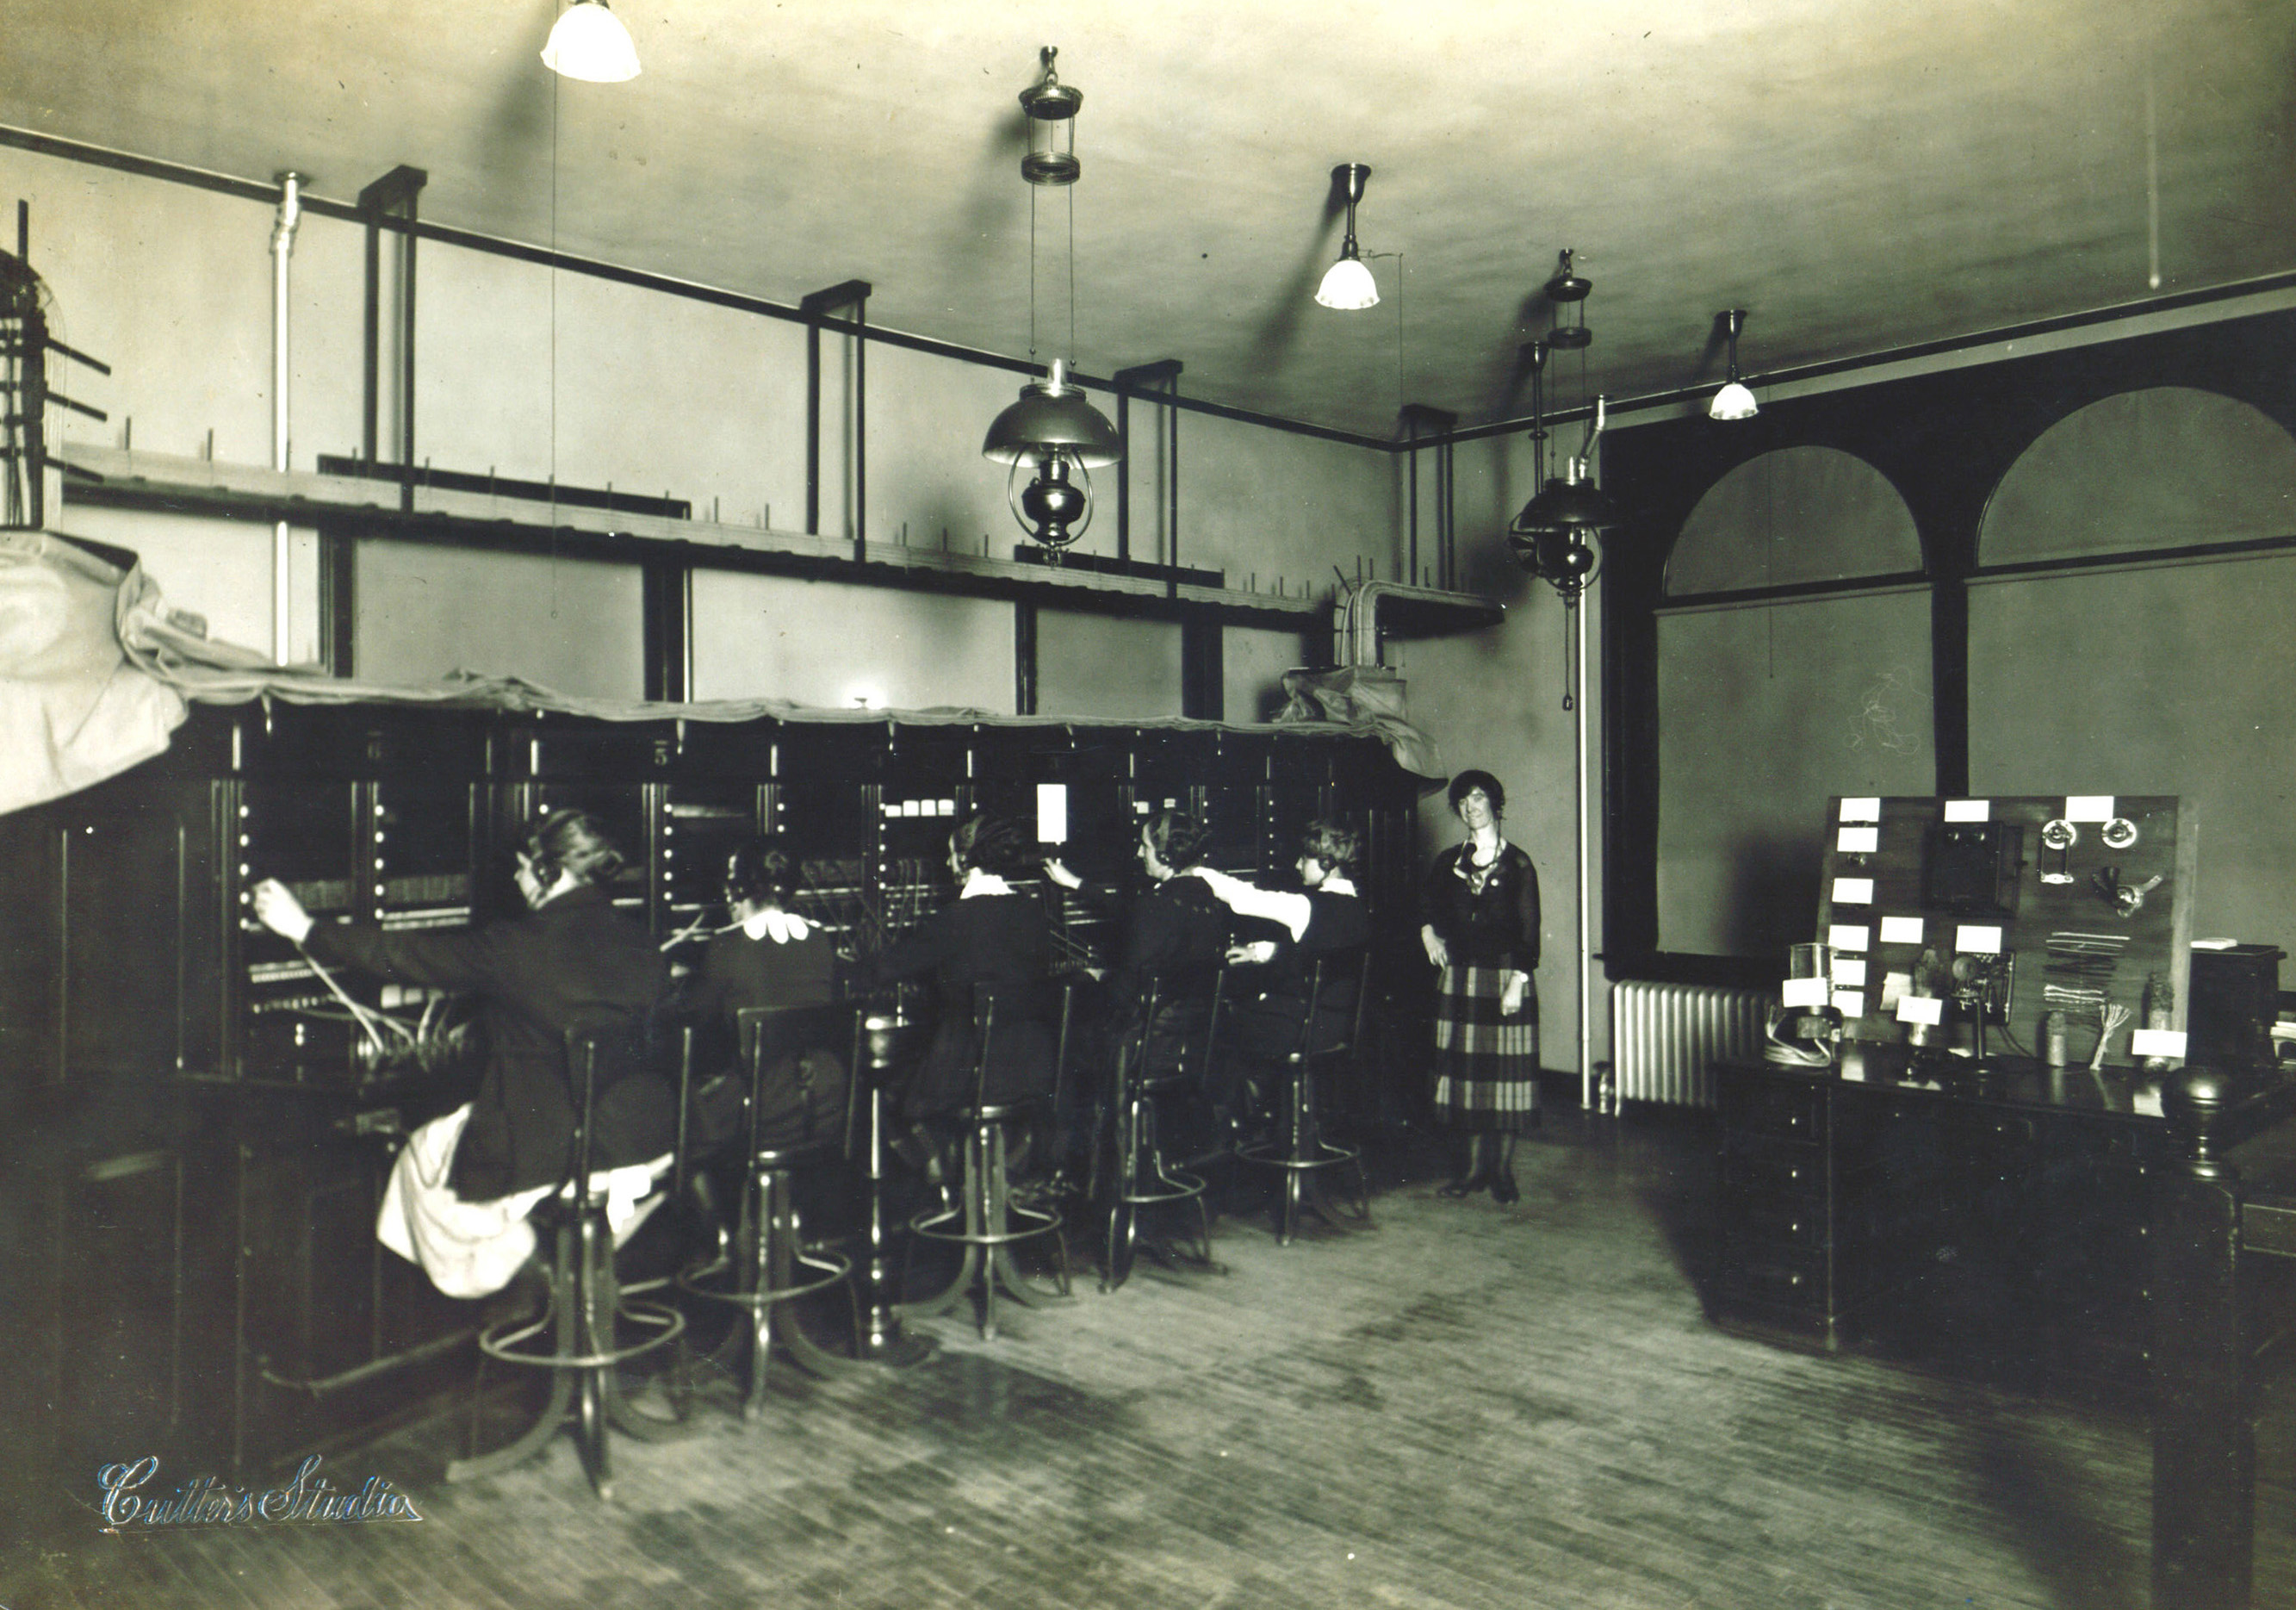 Peterborough Telephone Exchange in the Historical Building about 1925